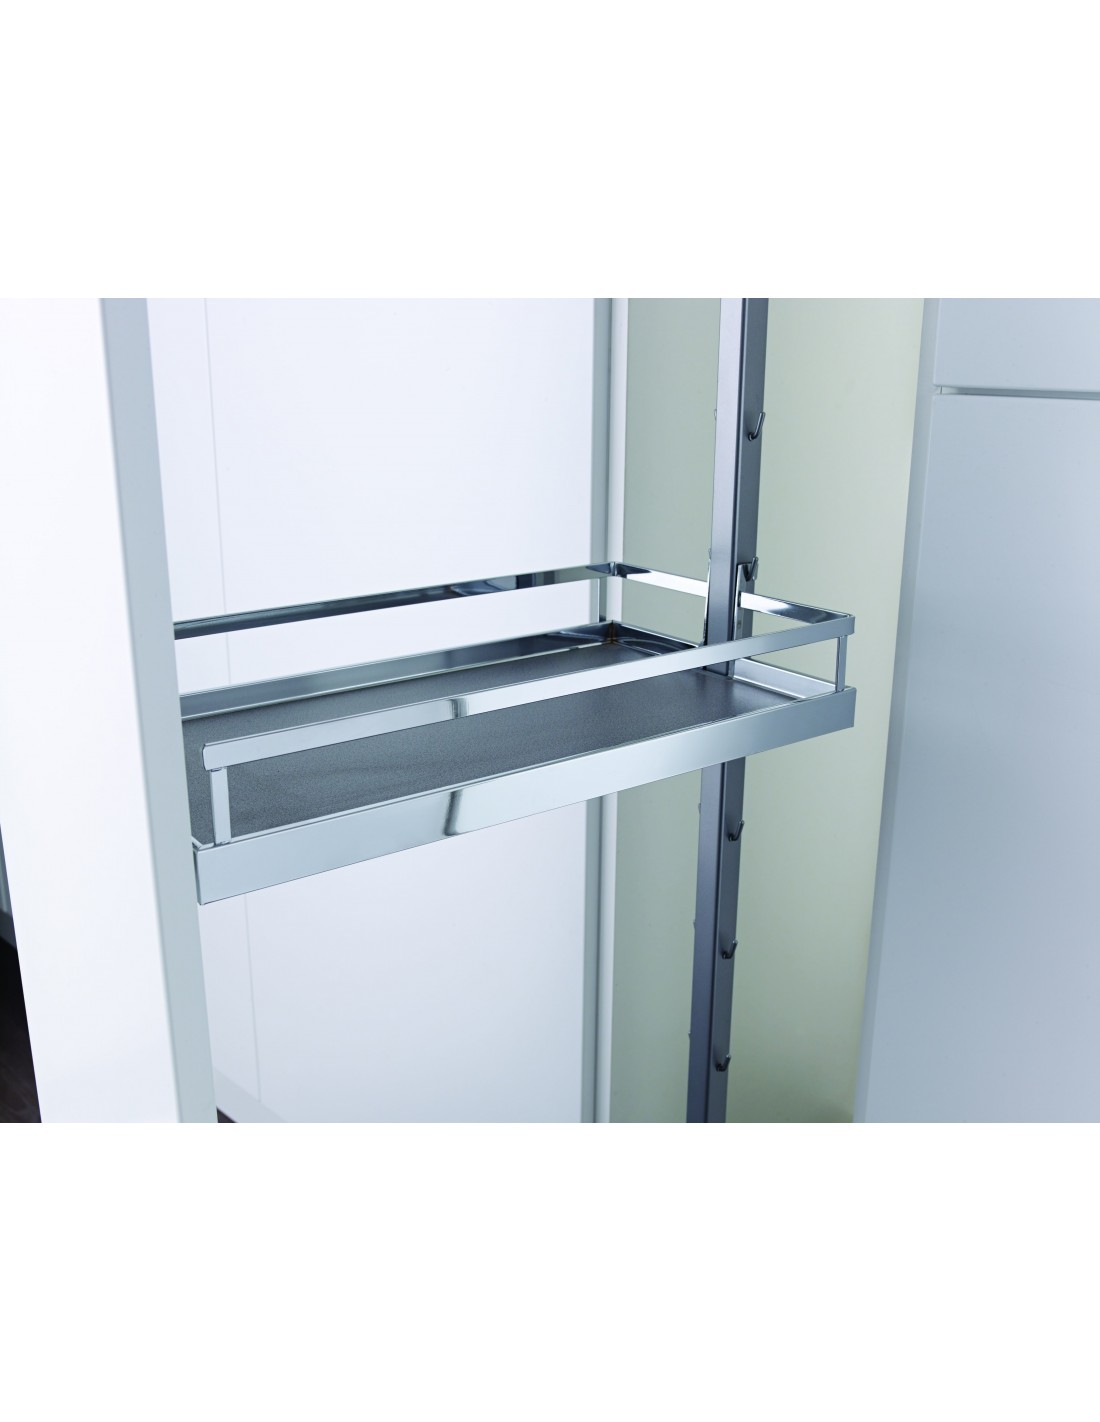 Kessebohmer Quality 300mm Tall Pull Out Larder For Kitchen